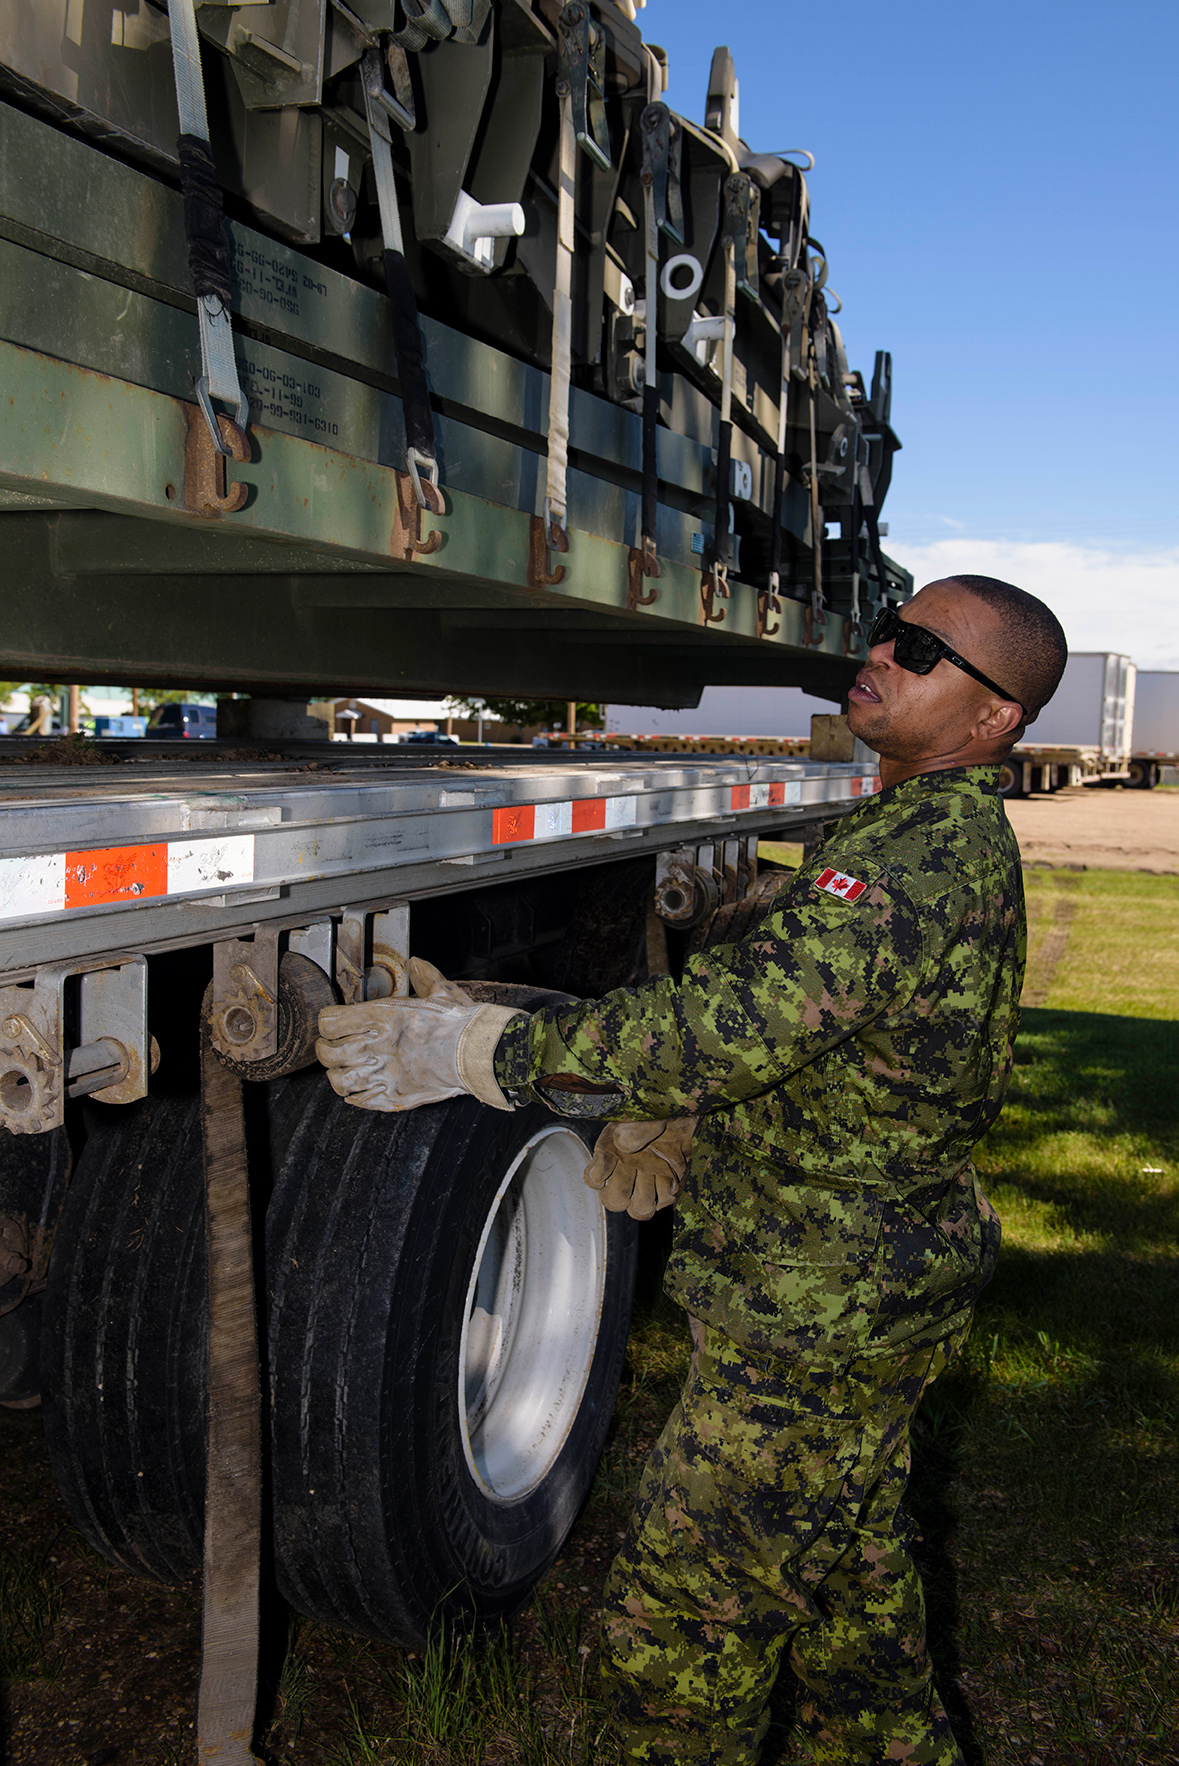 Corporal Shawn Brown prepares to leave Canadian Forces Base/ Area Support Unit Wainwright